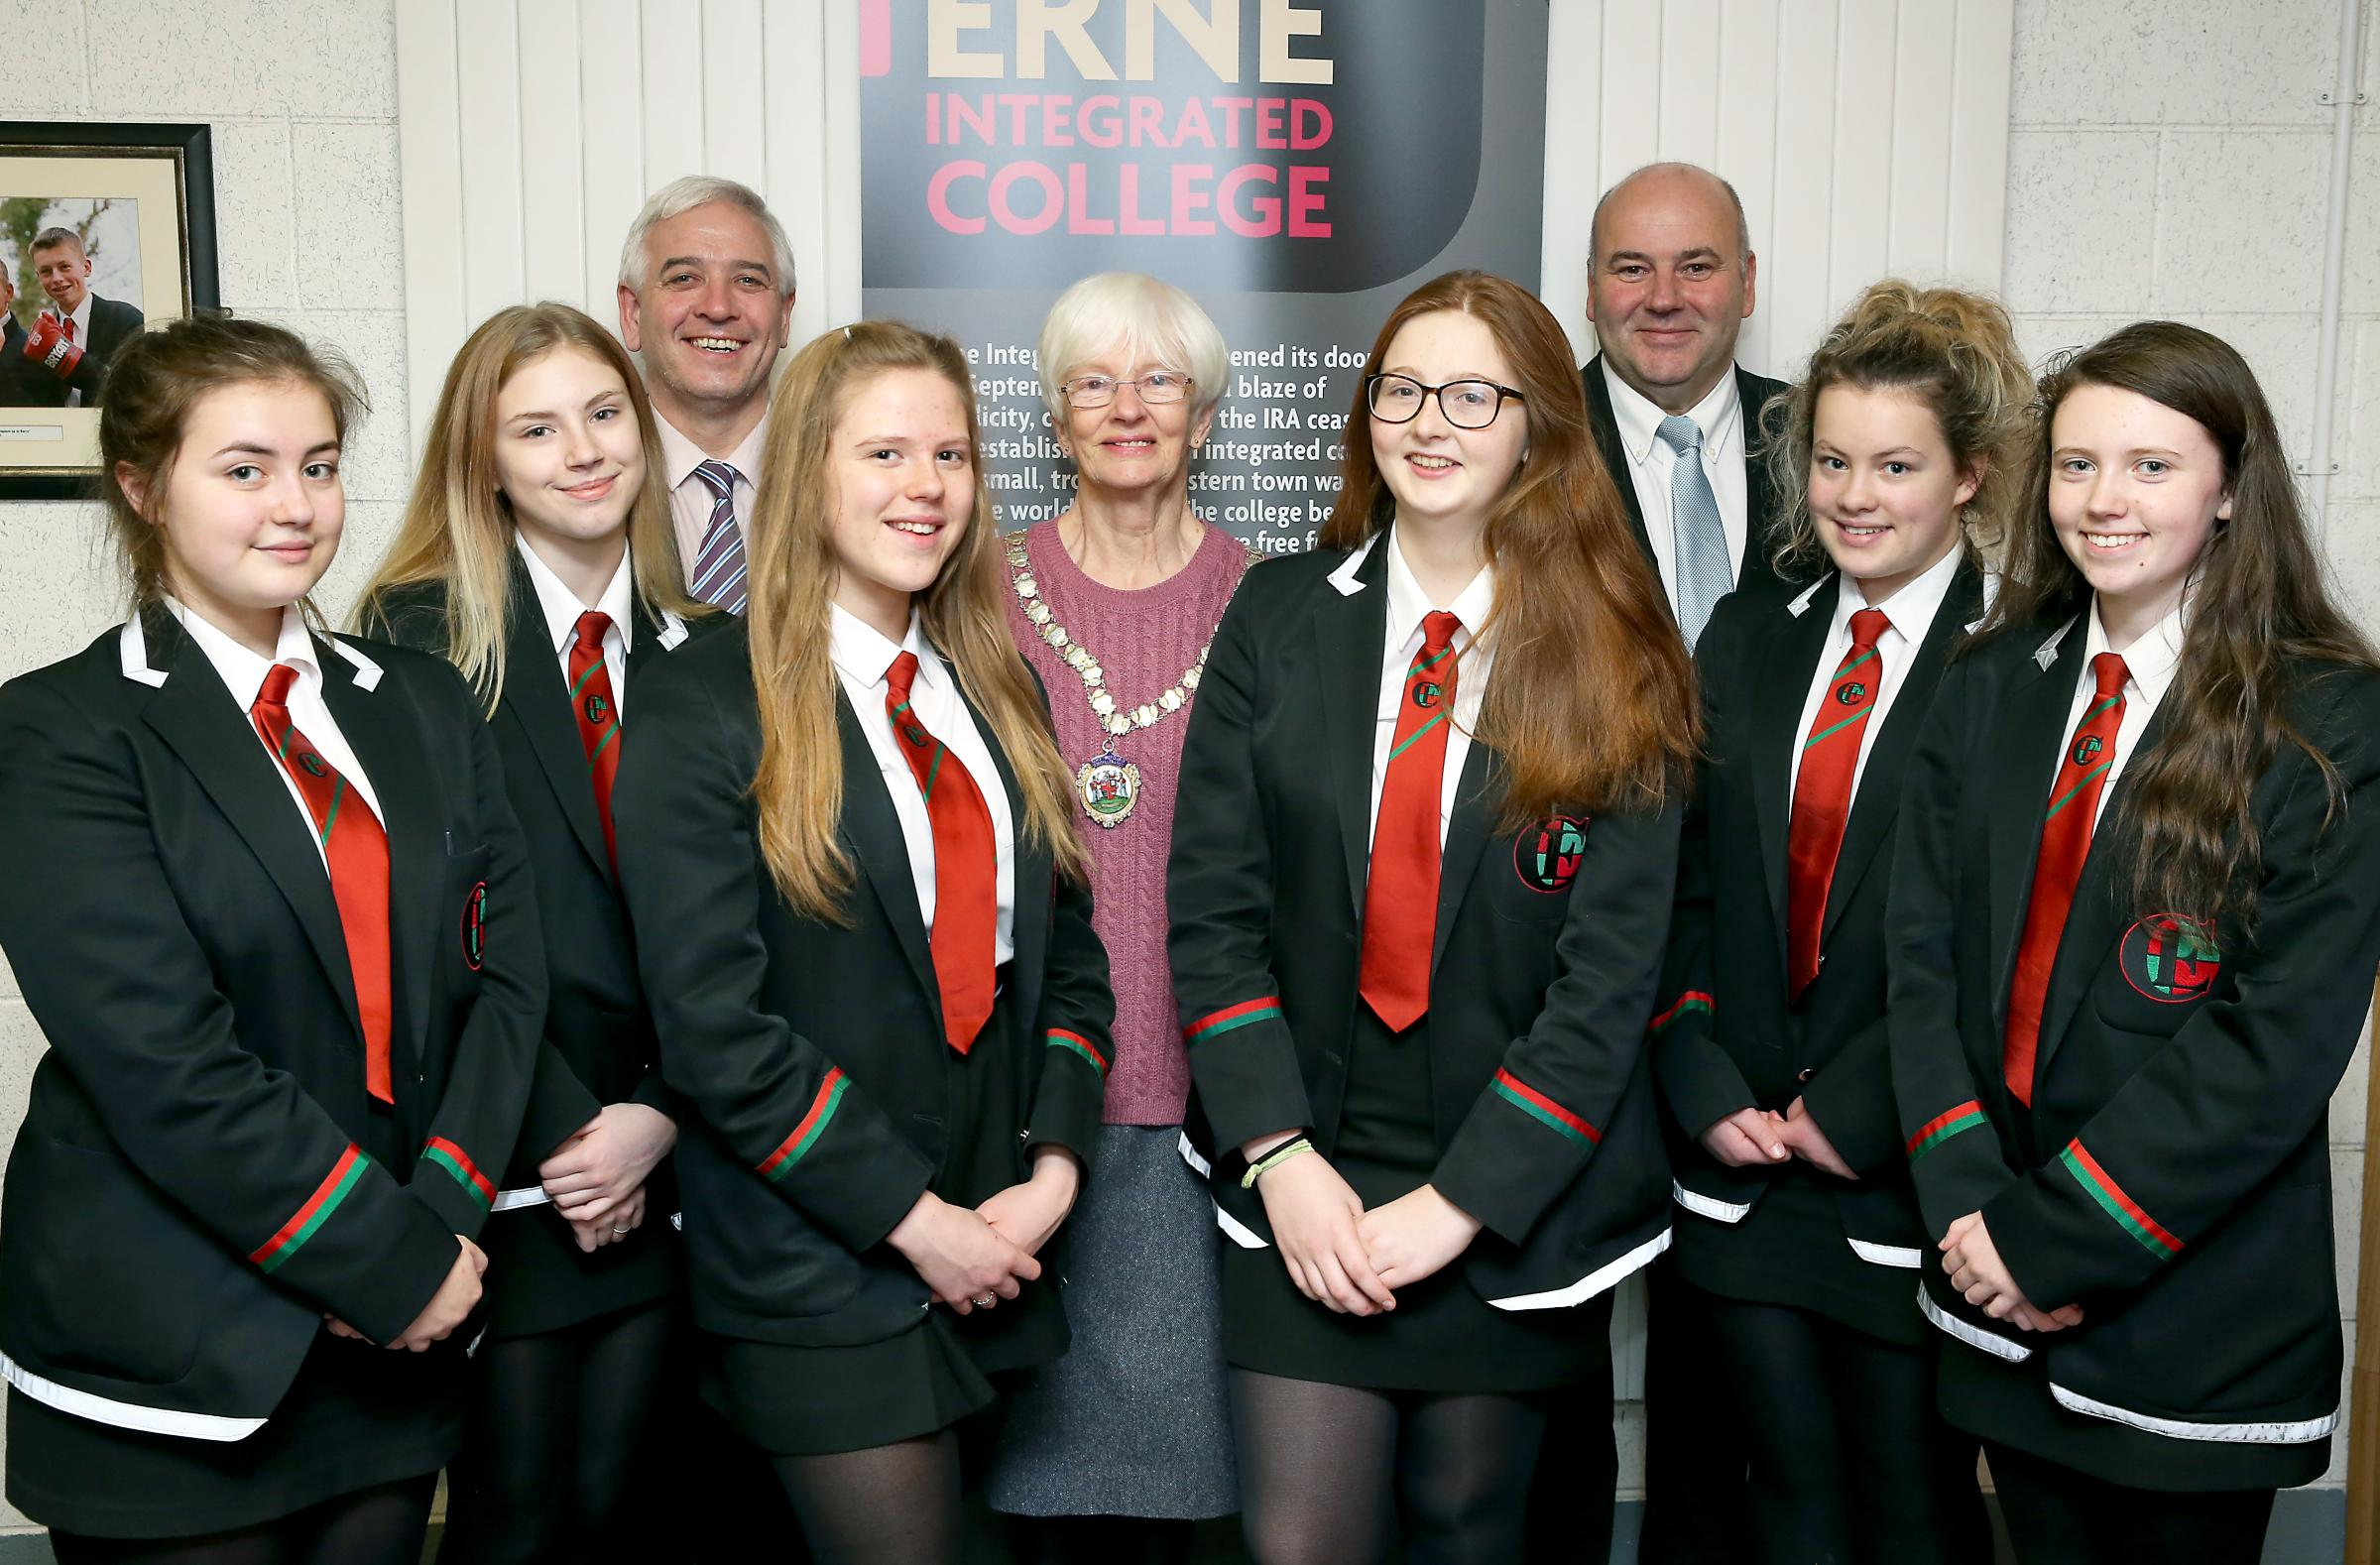 Mrs. Pat Deering, President of Enniskillen Soroptimists with participating students from Erne Integrated College, including Meabh Mackin, 1st, and Molly Rees, joint 3rd. Also pictured, Sean Murphy, English teacher, and Jimmy Jackson-Ware, Principal.